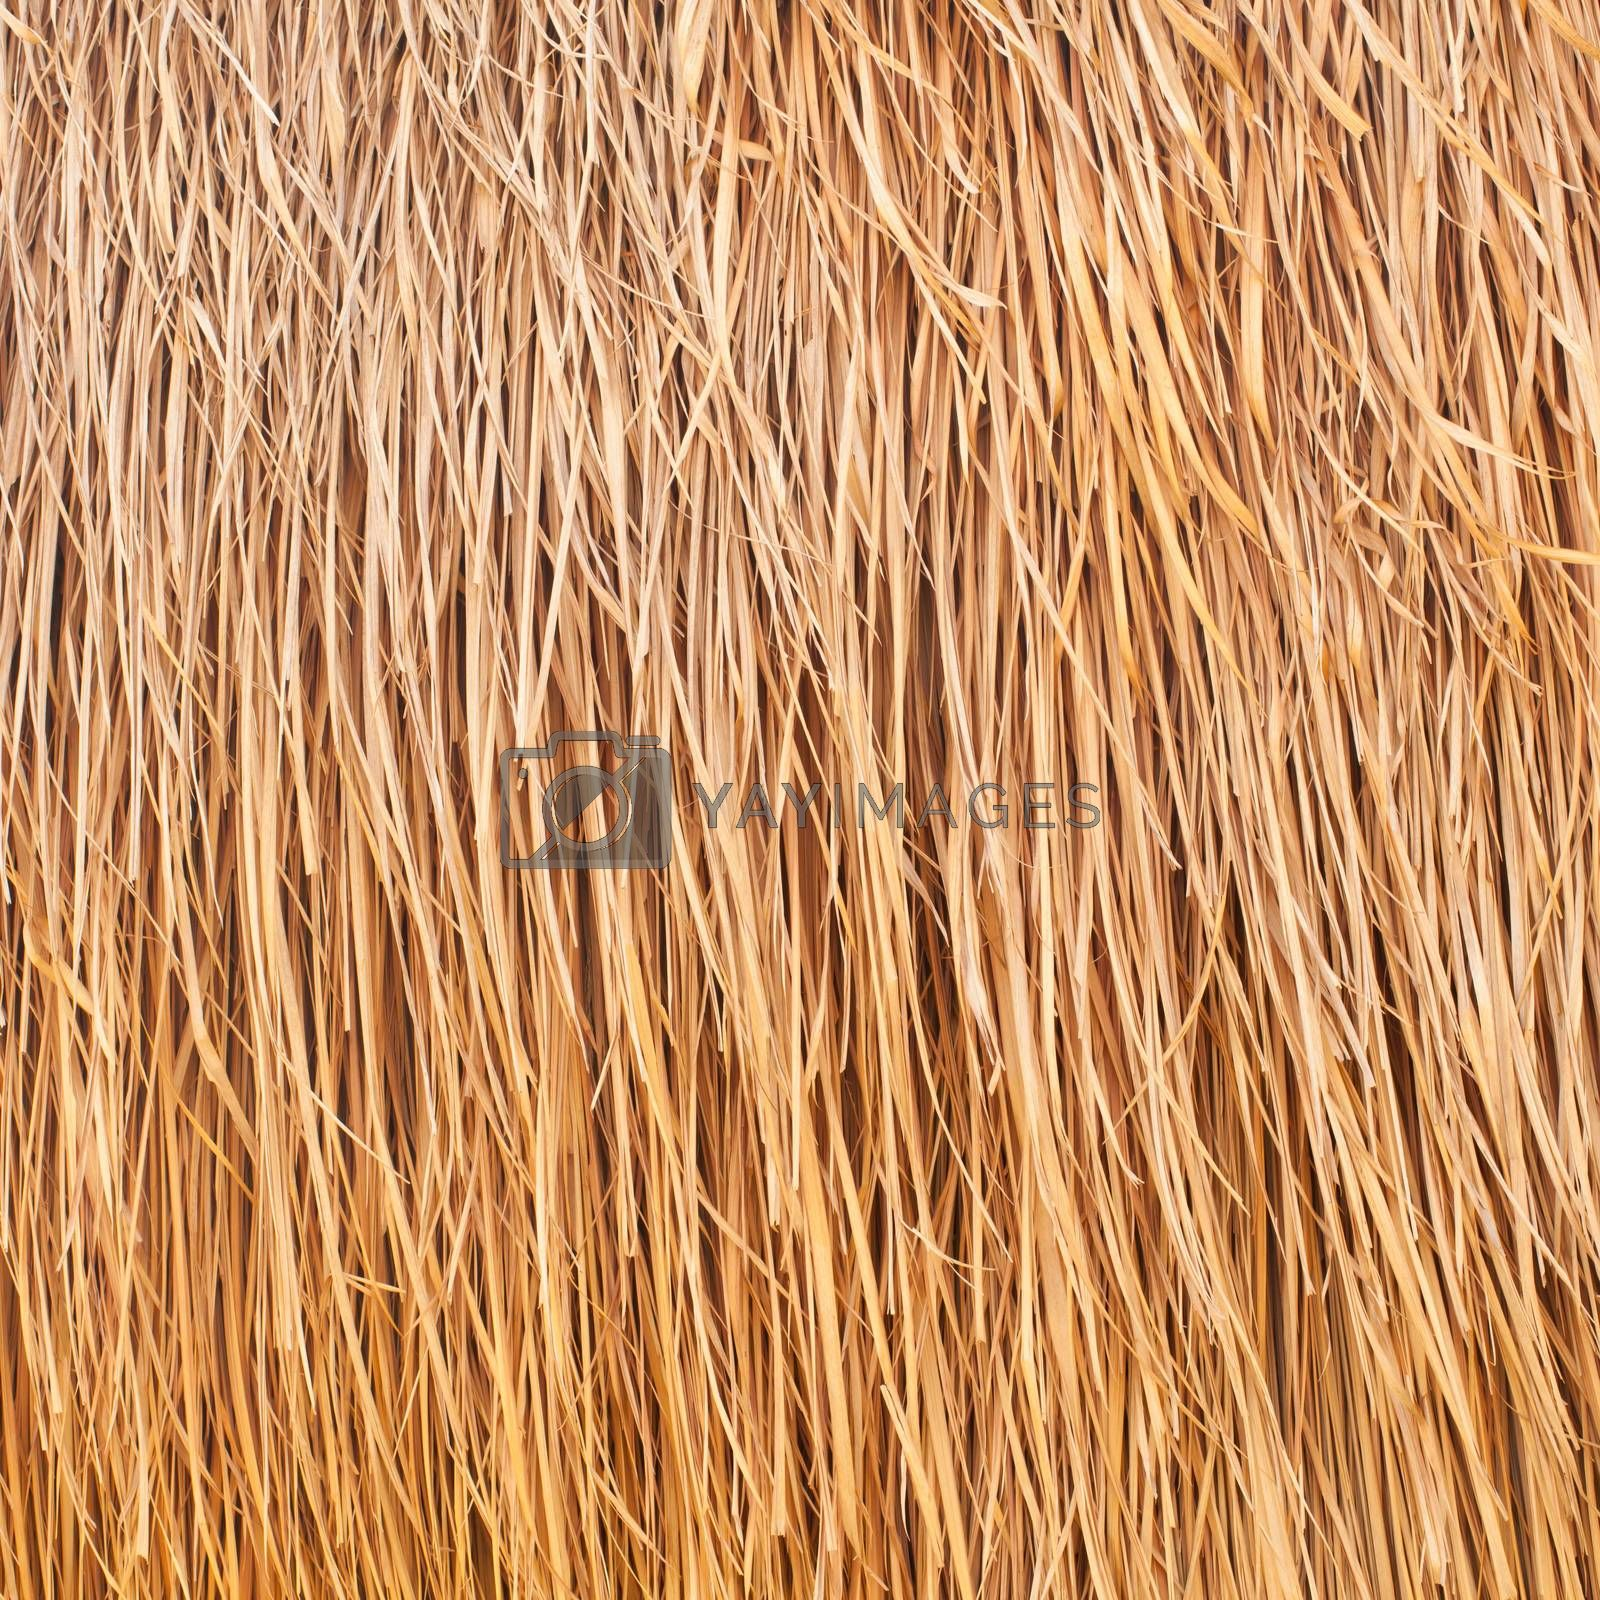 palm tree leaves as background